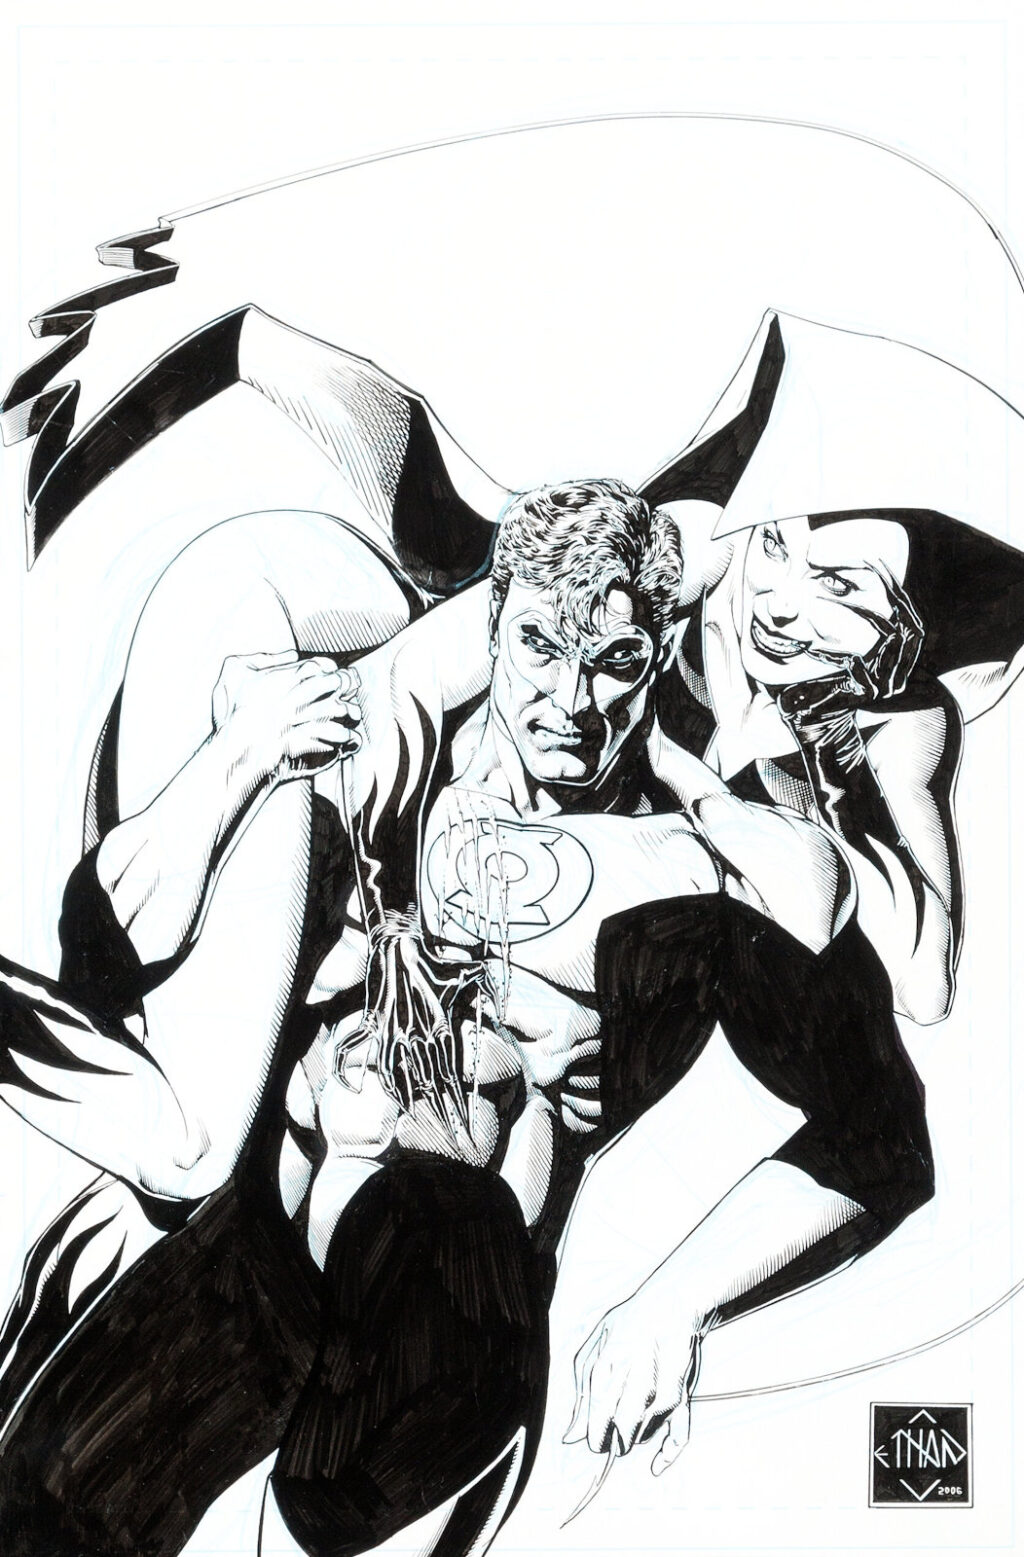 Green Lantern issue 15 cover by Ethan Van Sciver